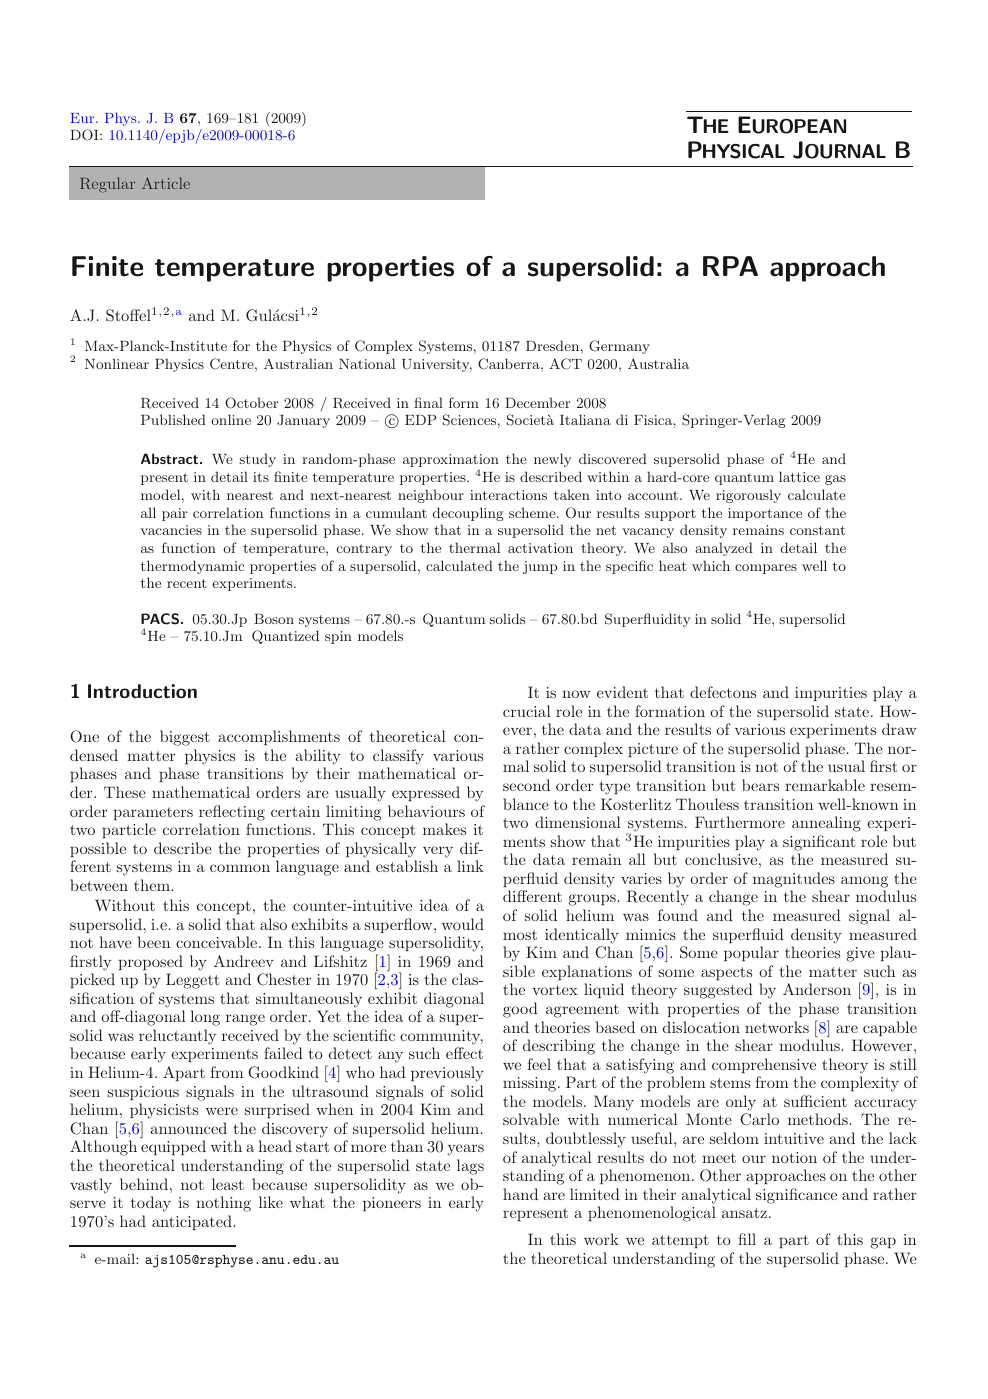 Finite temperature properties of a supersolid: a RPA